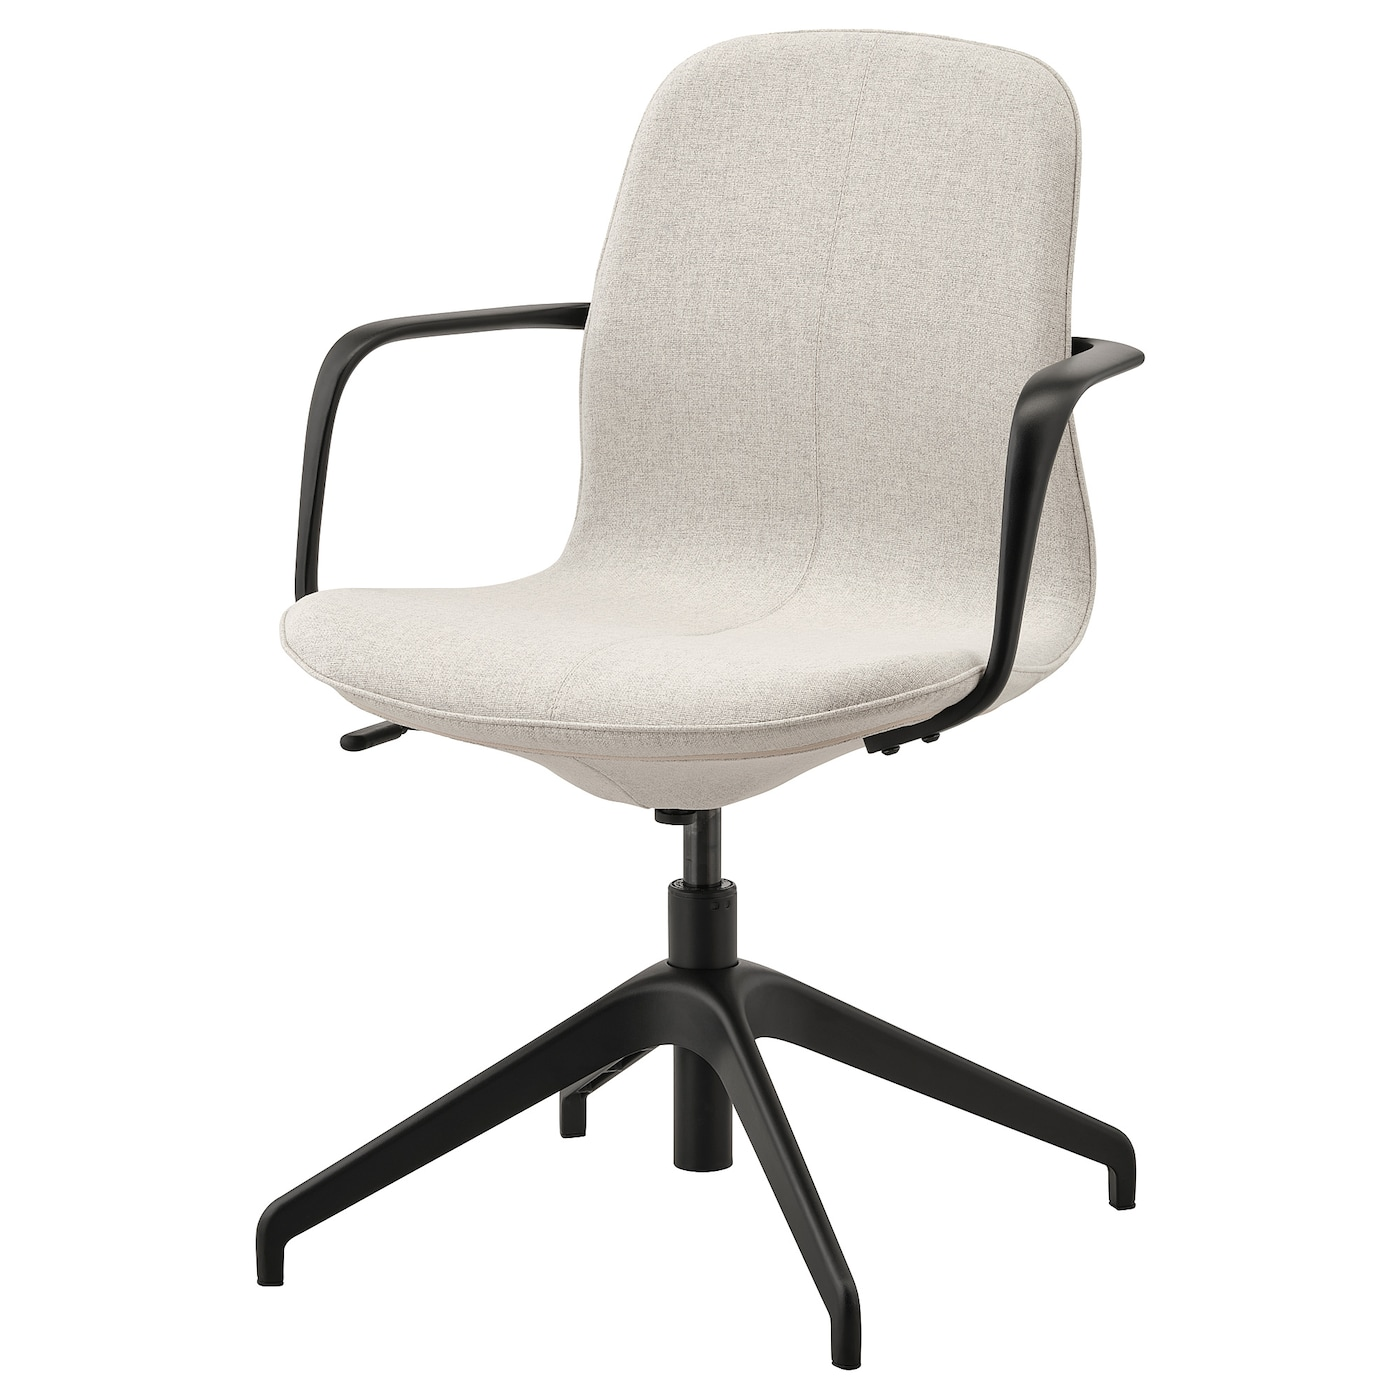 jaell-conference-chair-with-armrests-gunnared-beige-black__0725425_PE734857_S5